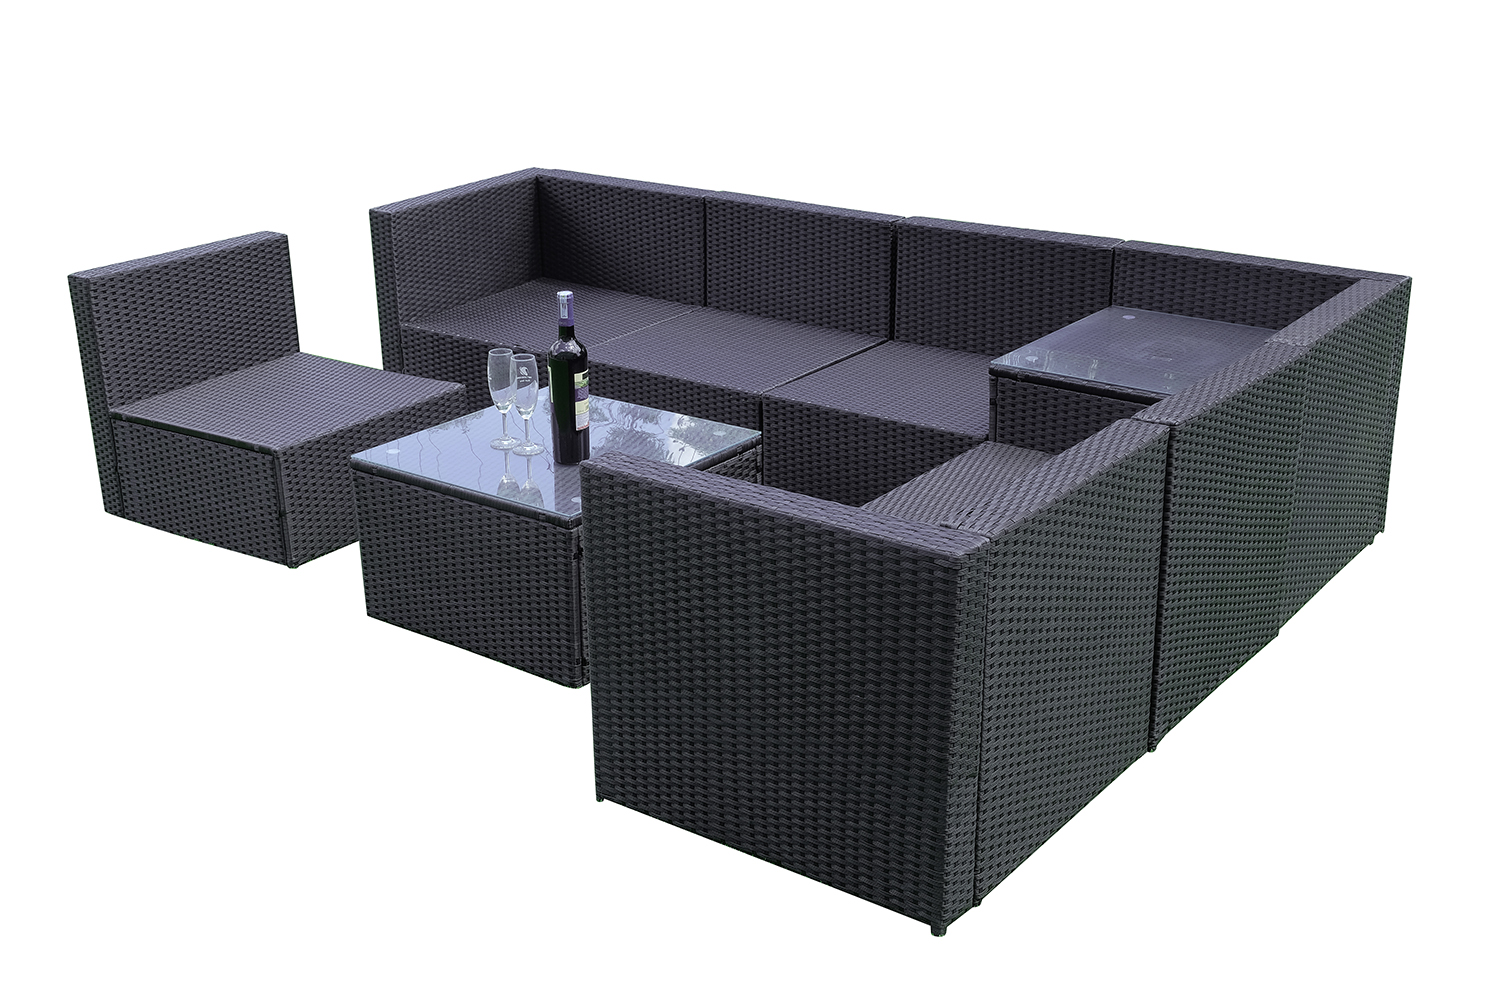 mcombo 20tlg poly rattan gartenm bel sitzgarnitur. Black Bedroom Furniture Sets. Home Design Ideas